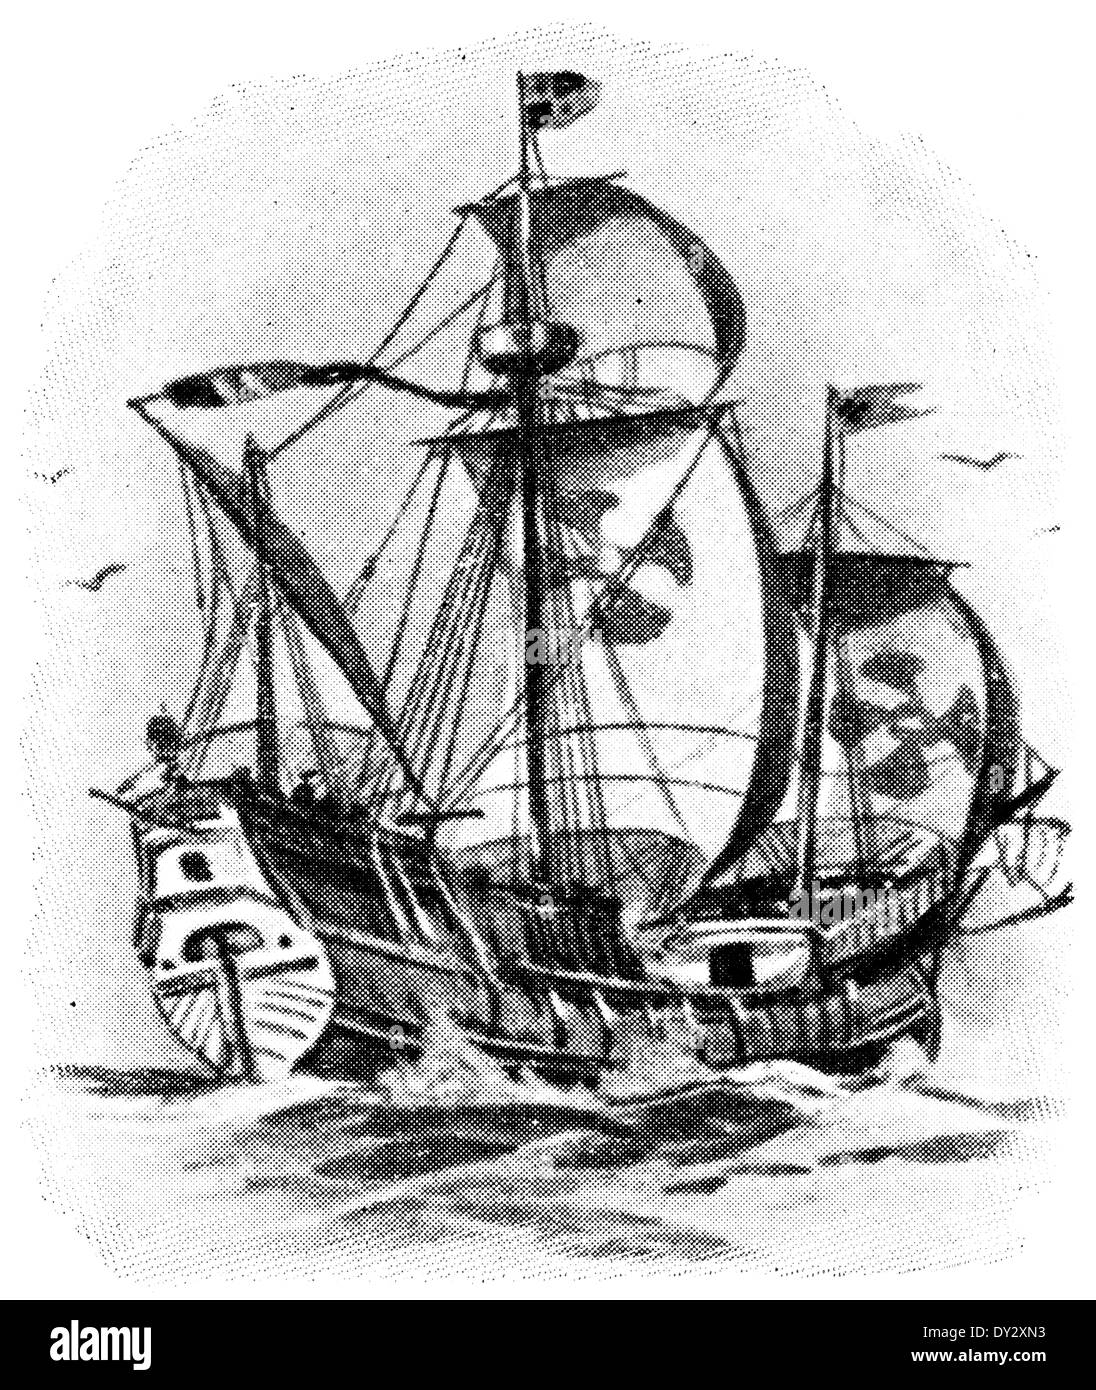 Caravel of Christopher Columbus, in 1492. - Stock Image